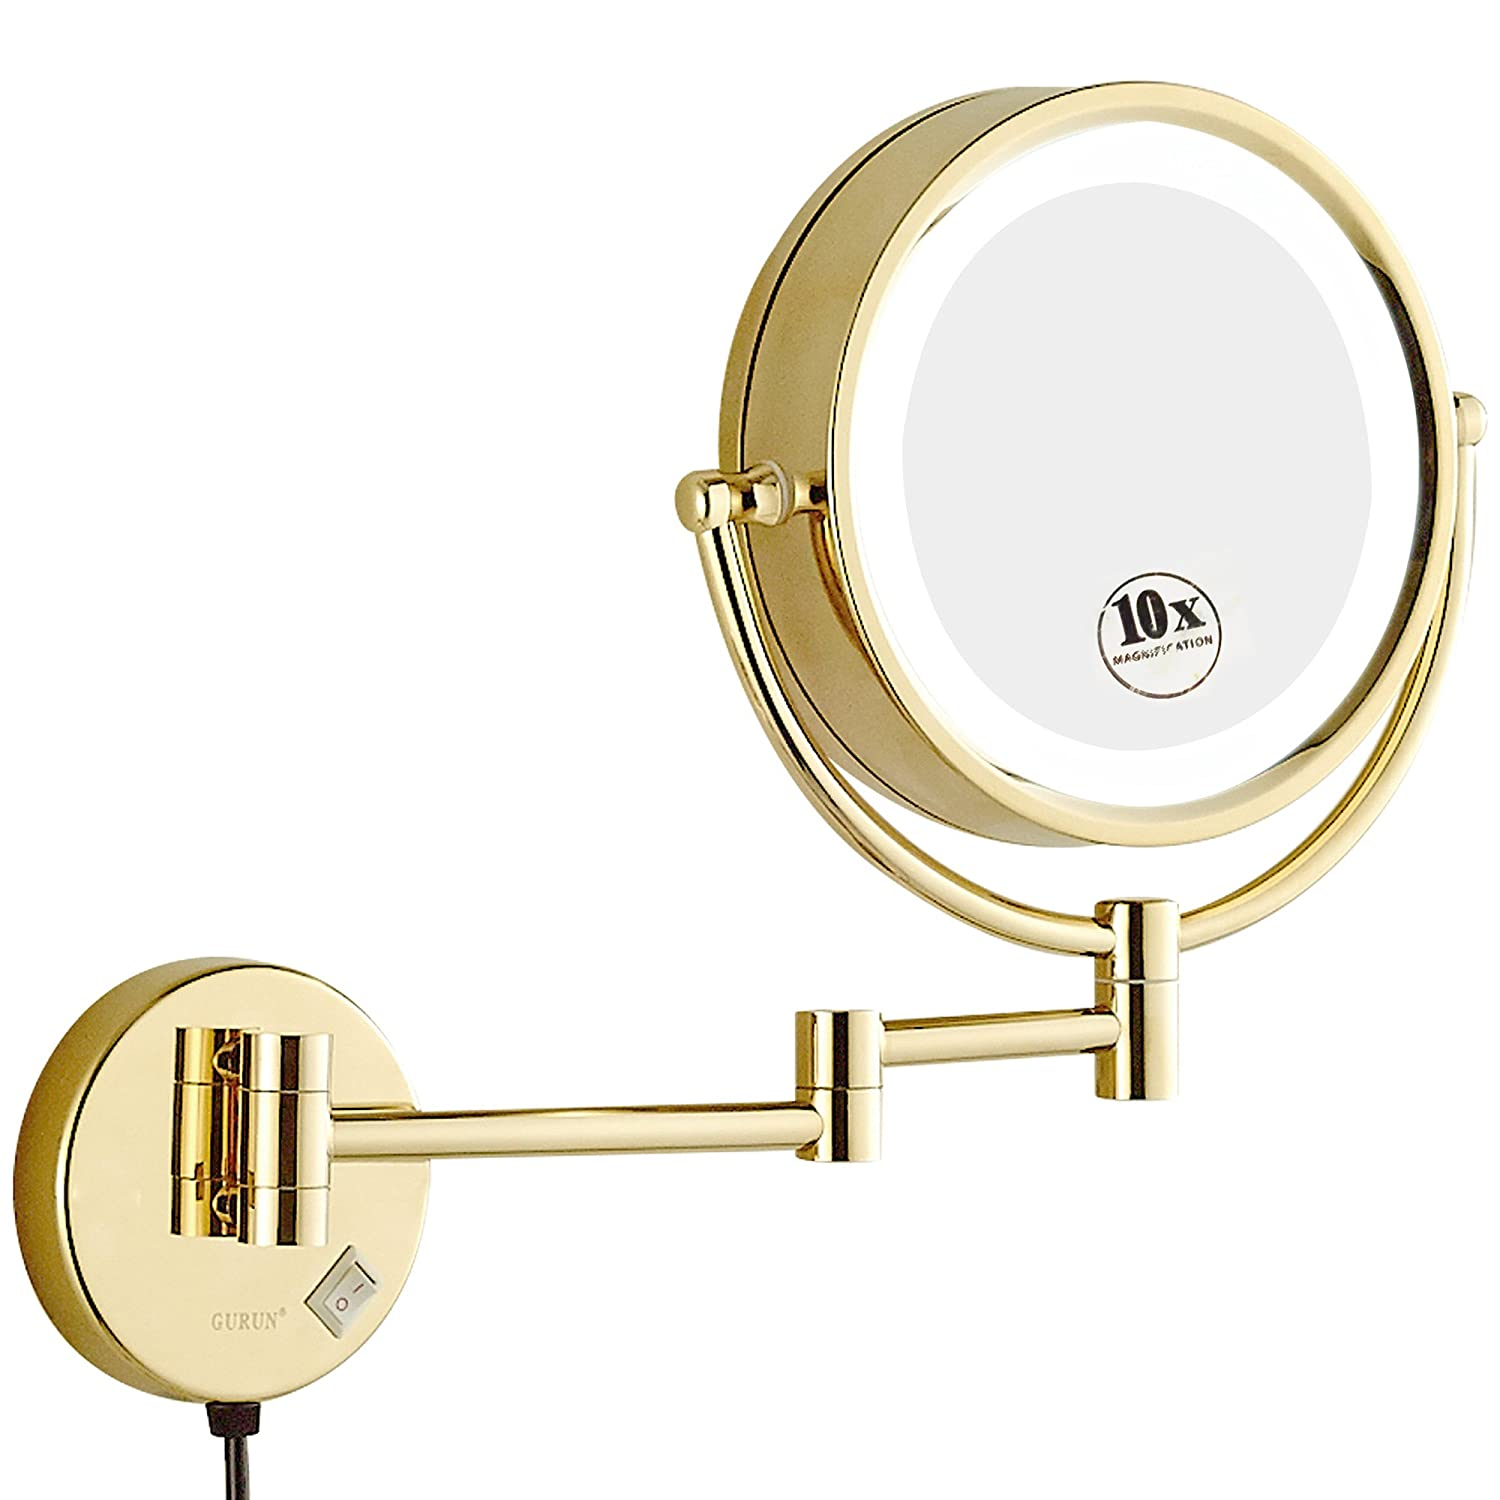 GURUN 8.5 Inch LED Lighted Wall Mount Makeup Mirror with 10x Magnification,Gold Finish M1809DJ(8.5in,10x)